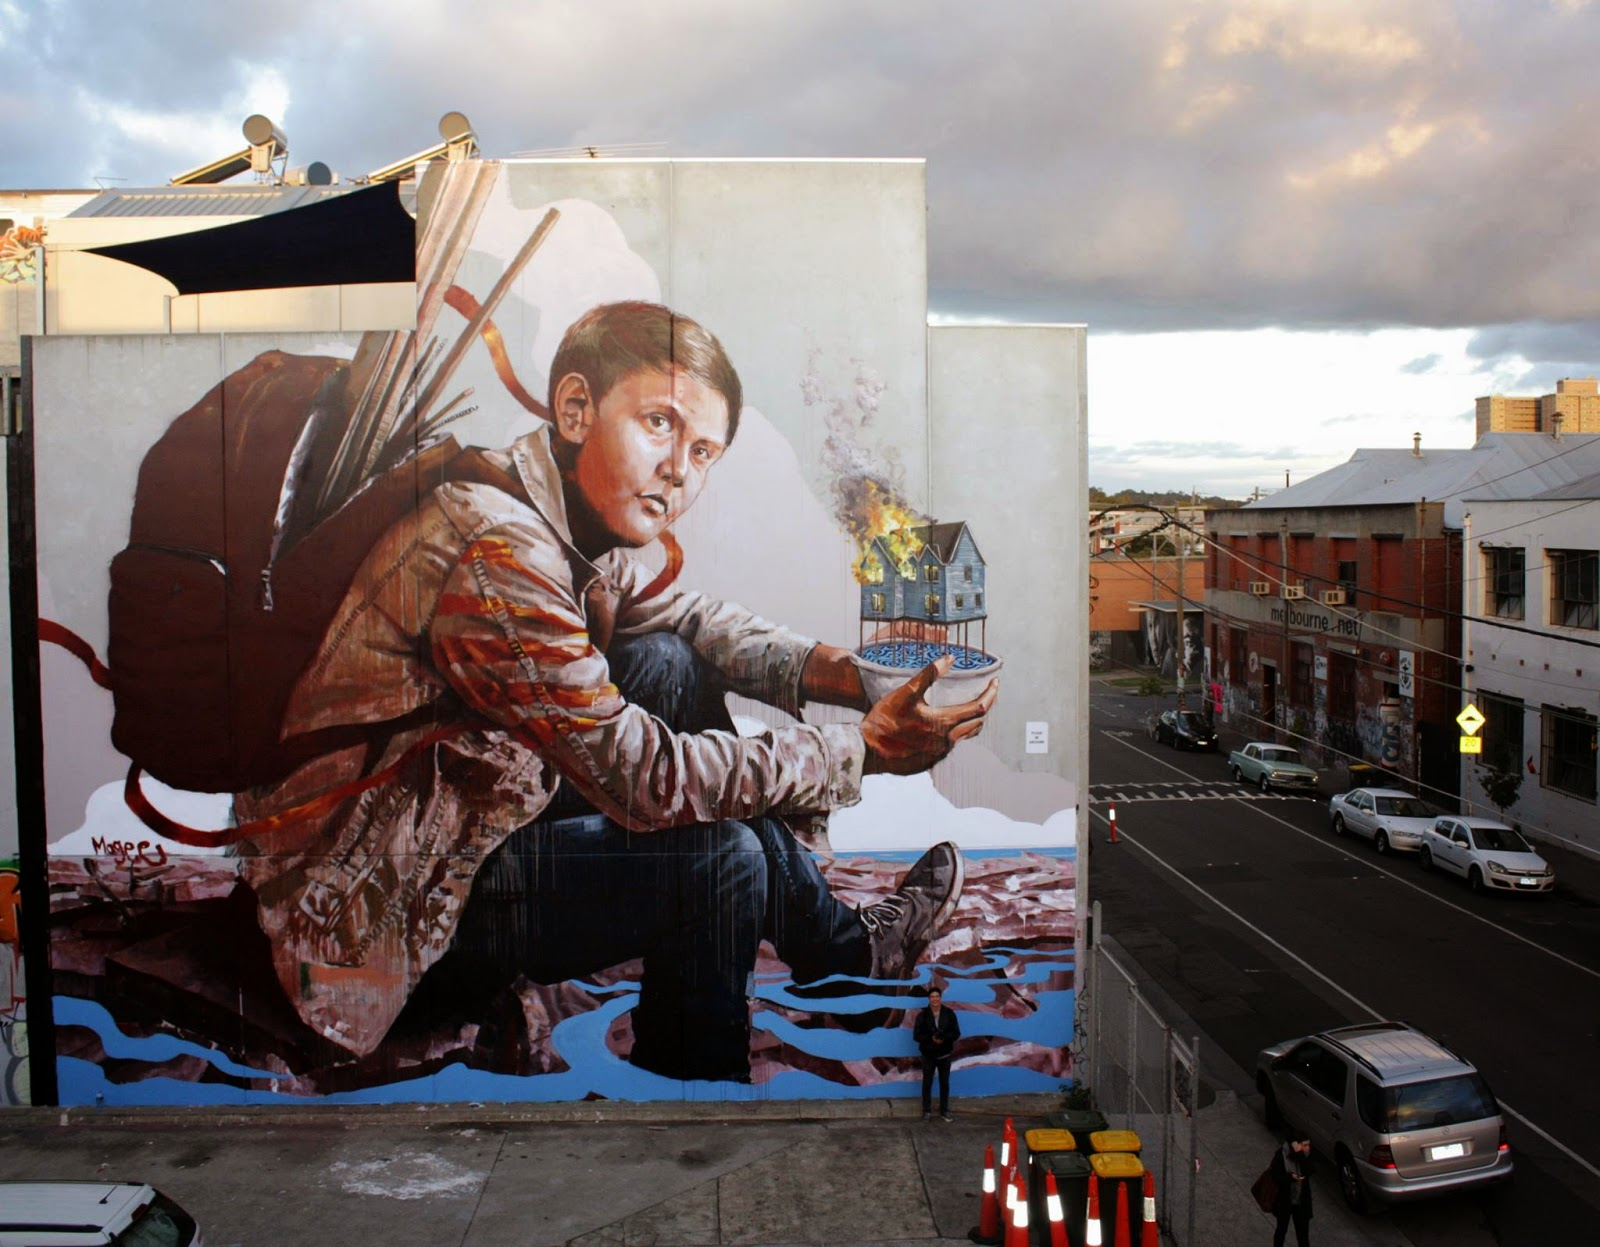 Fintan Magee is currently in Australia where he just wrapped up yet another gigantic mural somewhere in Collingwood, Melbourne.